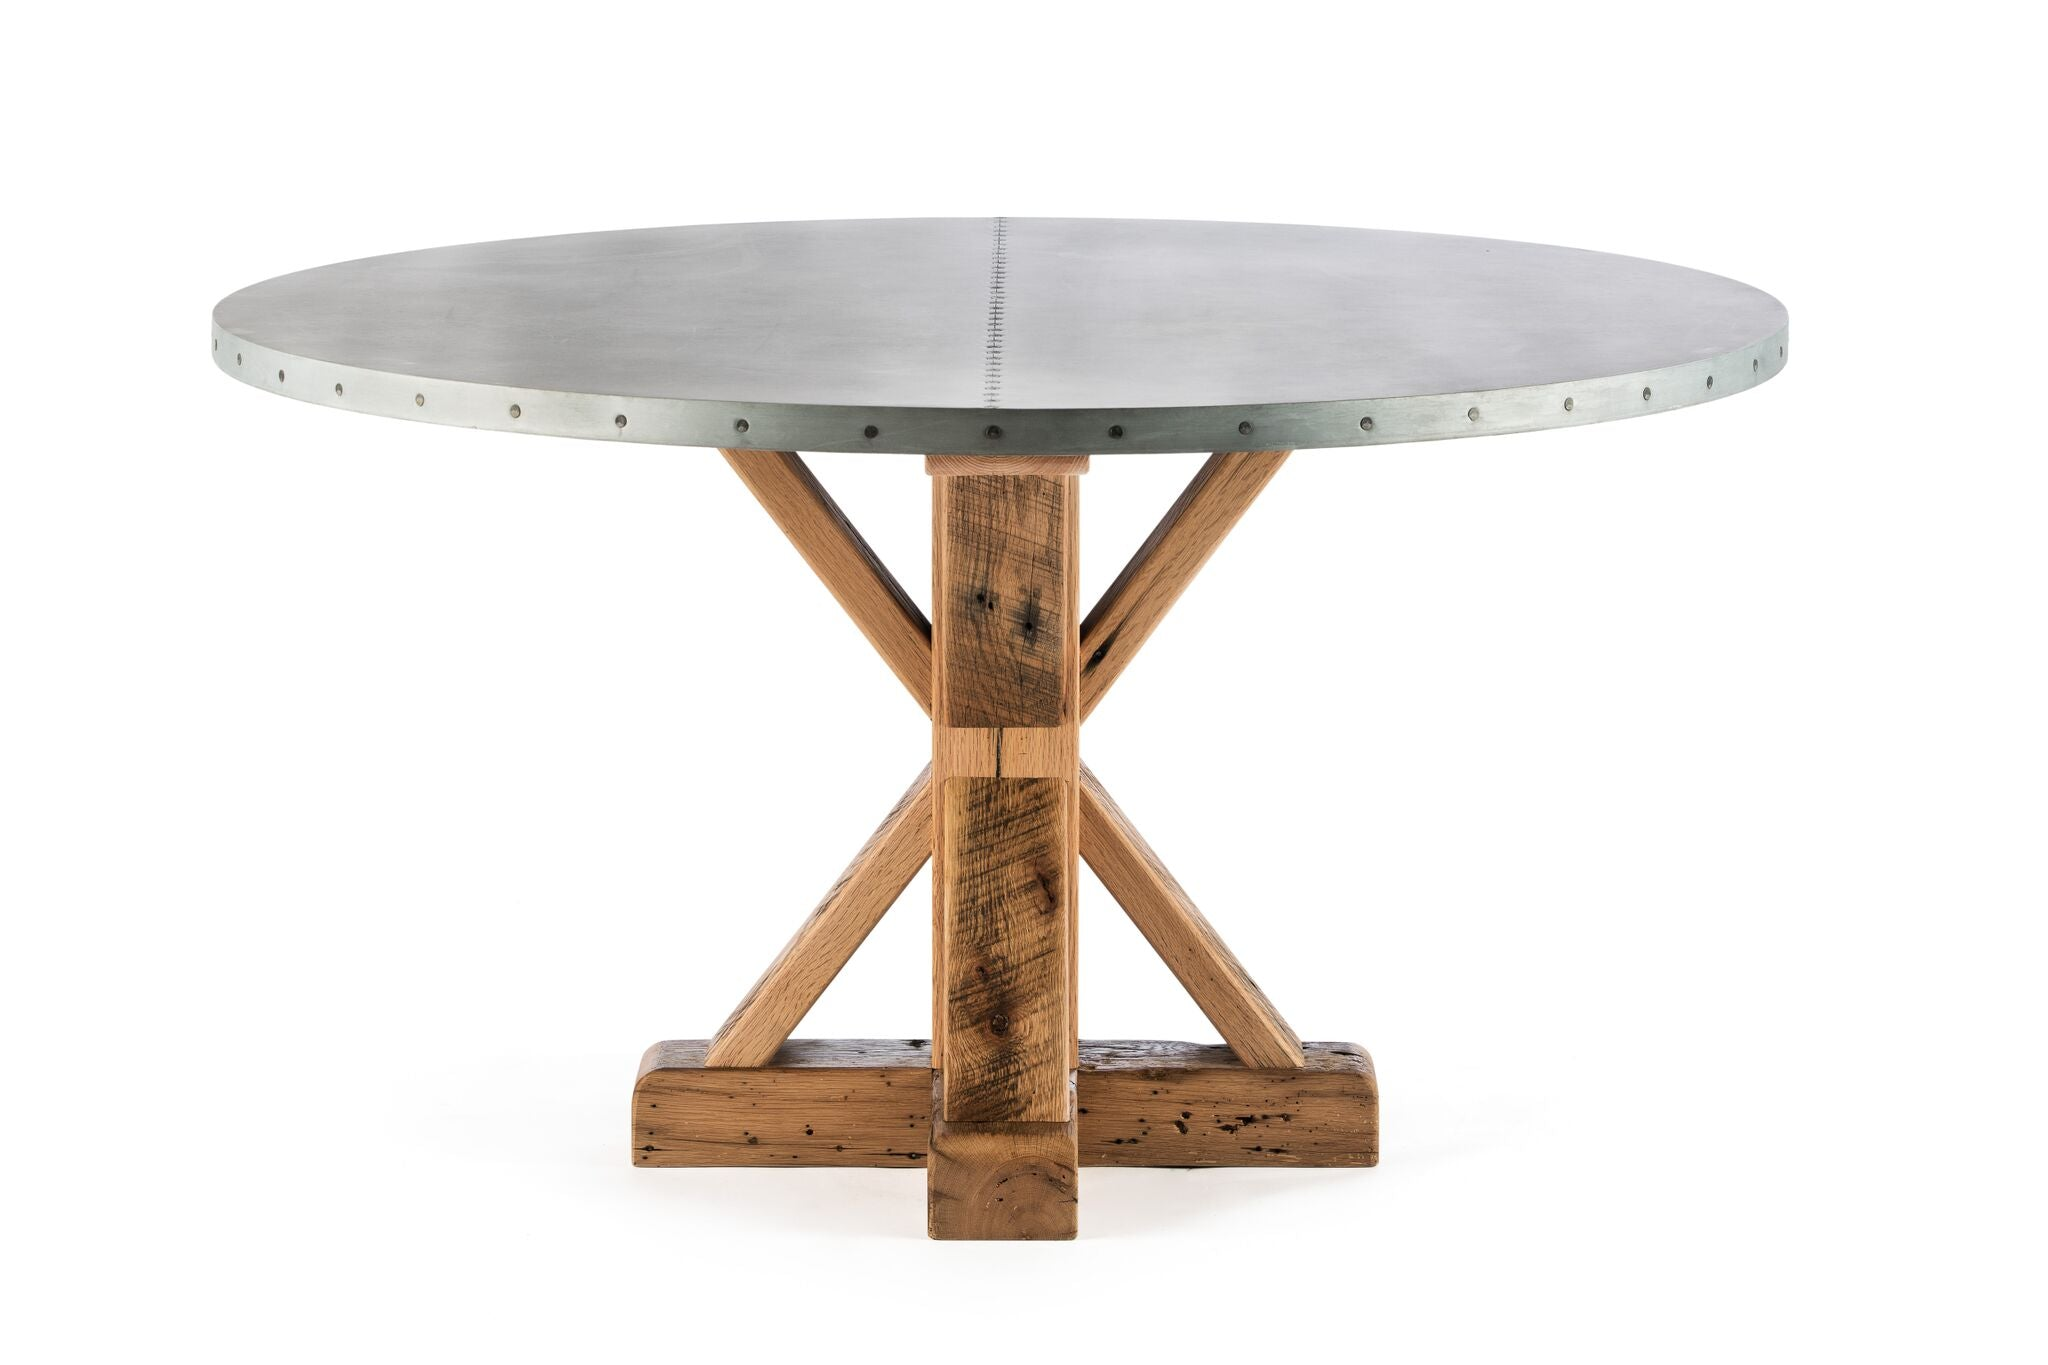 "Zinc Round Tables | French Trestle Table | BLACKENED BRONZE | Espresso Ash | CUSTOM SIZE D 76 H 29 | 2.5"" kingston-krafts-zinc-tables."